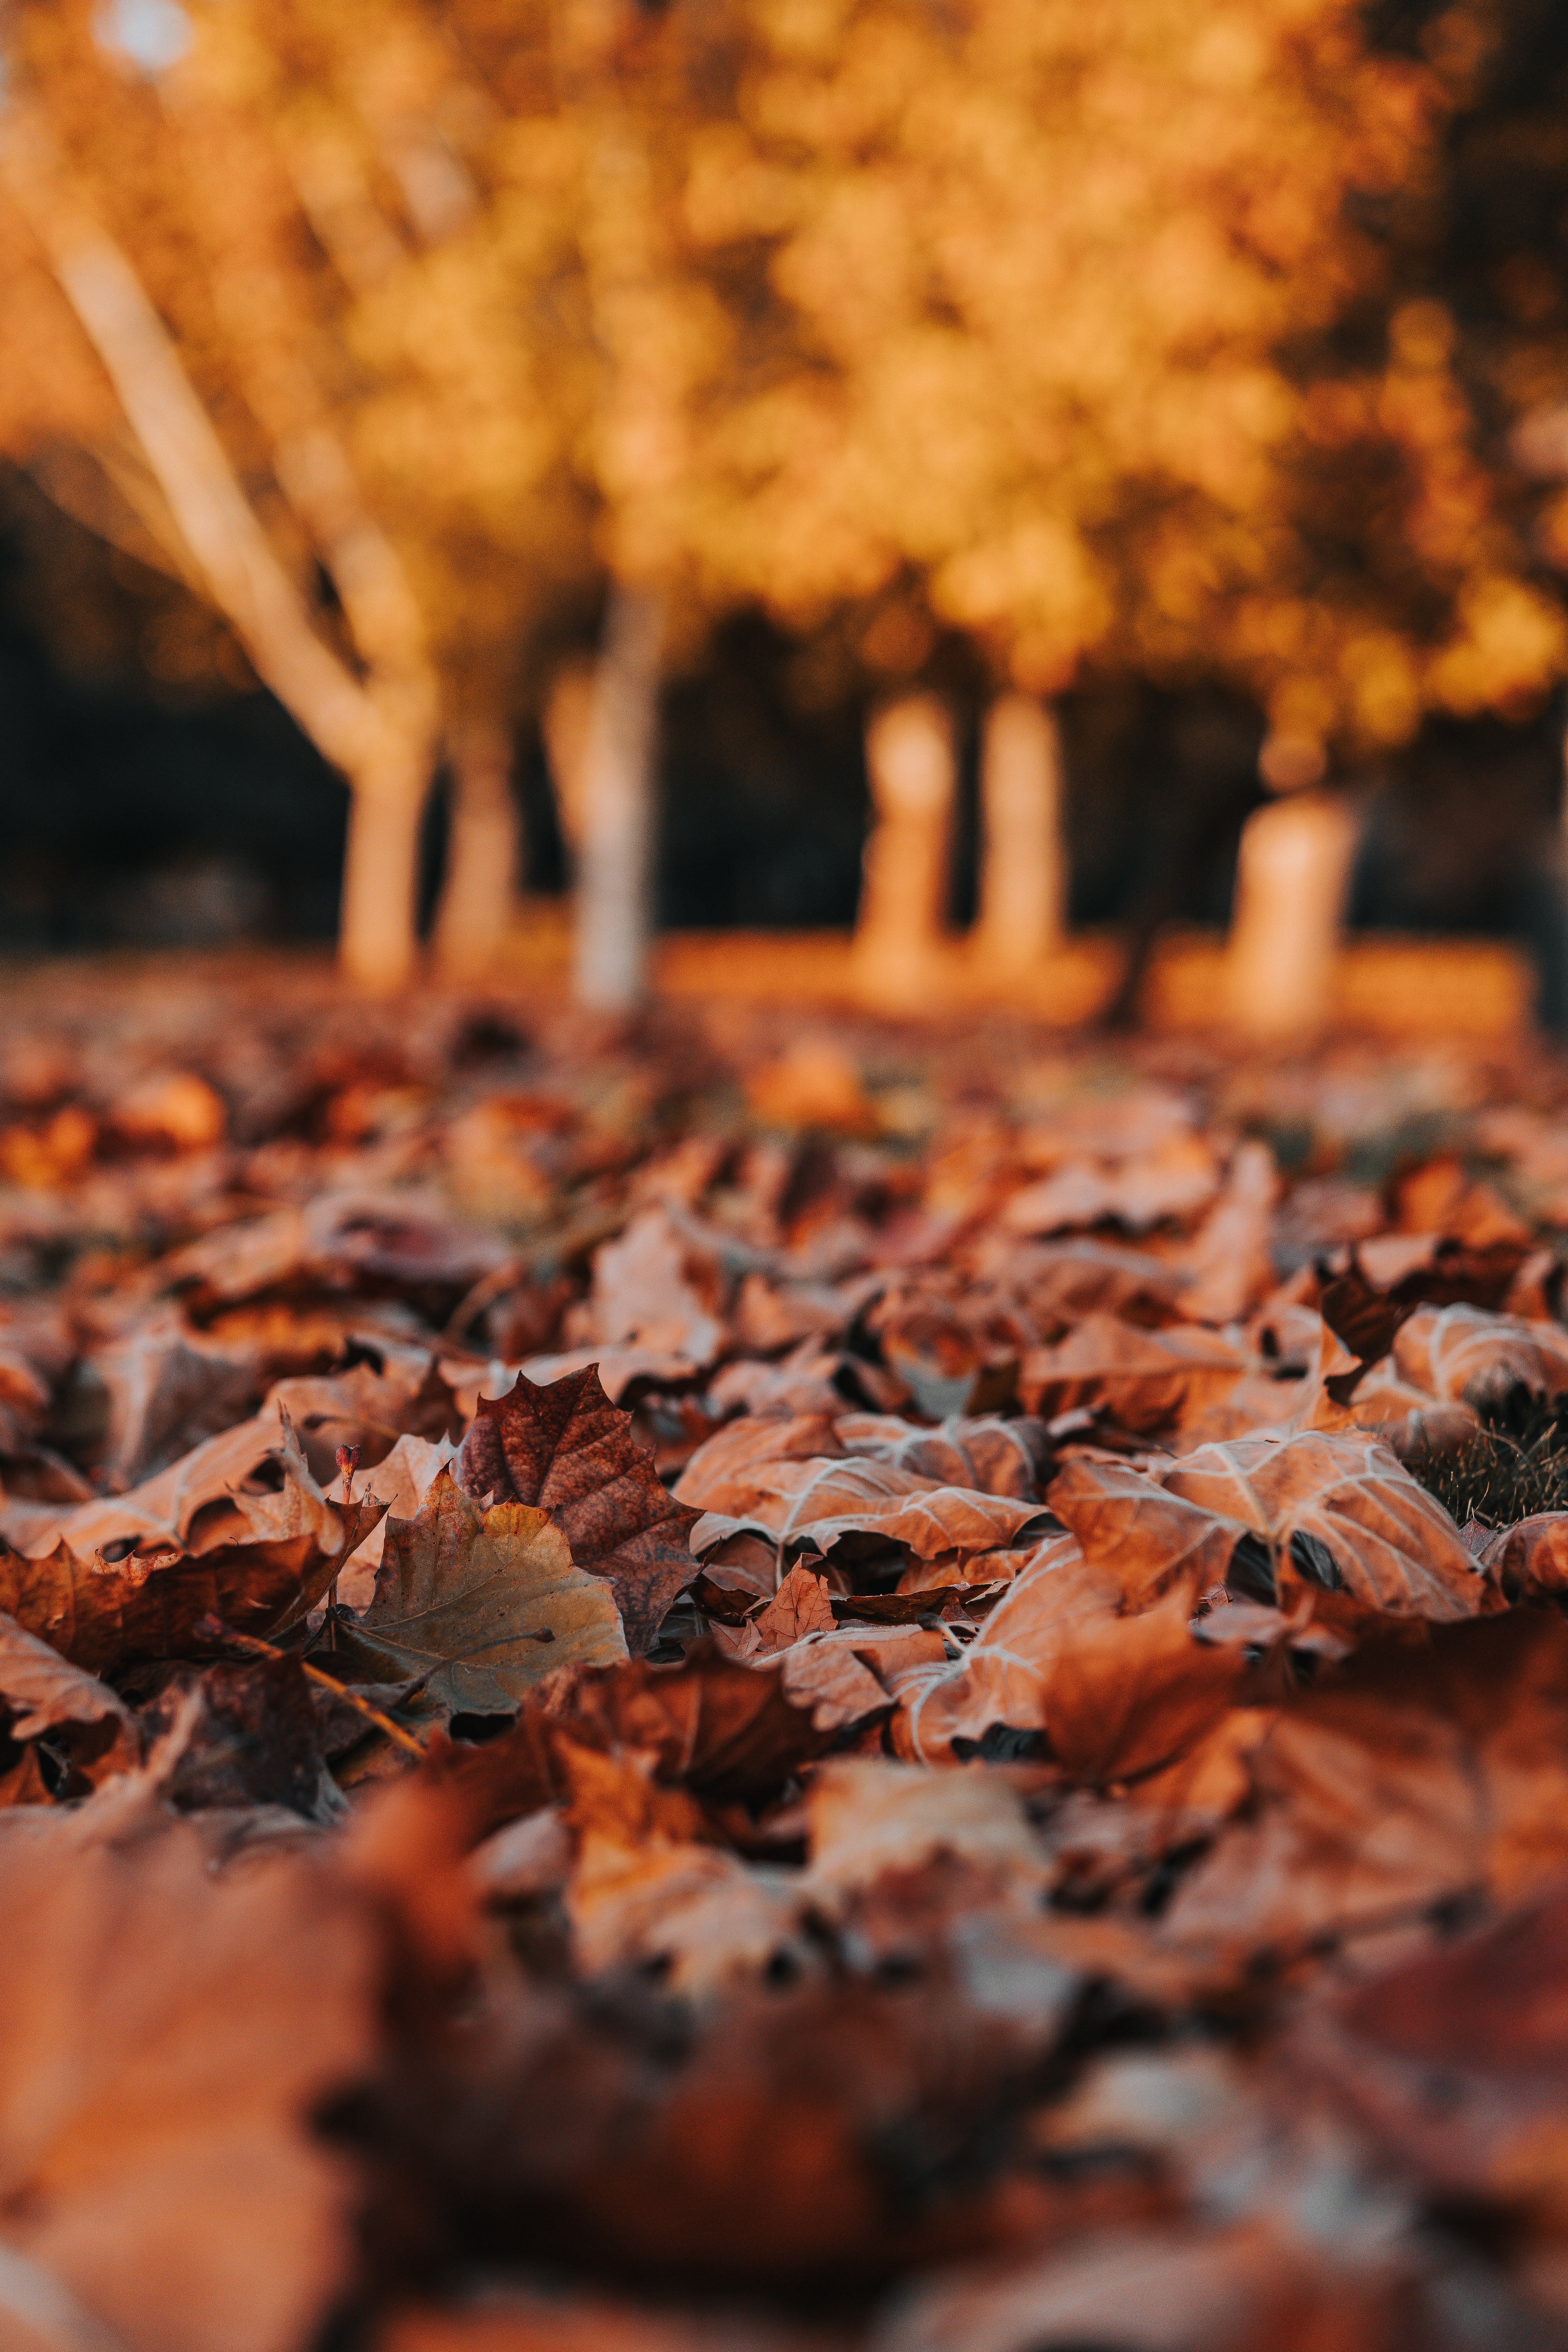 147126 download wallpaper Leaves, Dry, Autumn, Nature screensavers and pictures for free